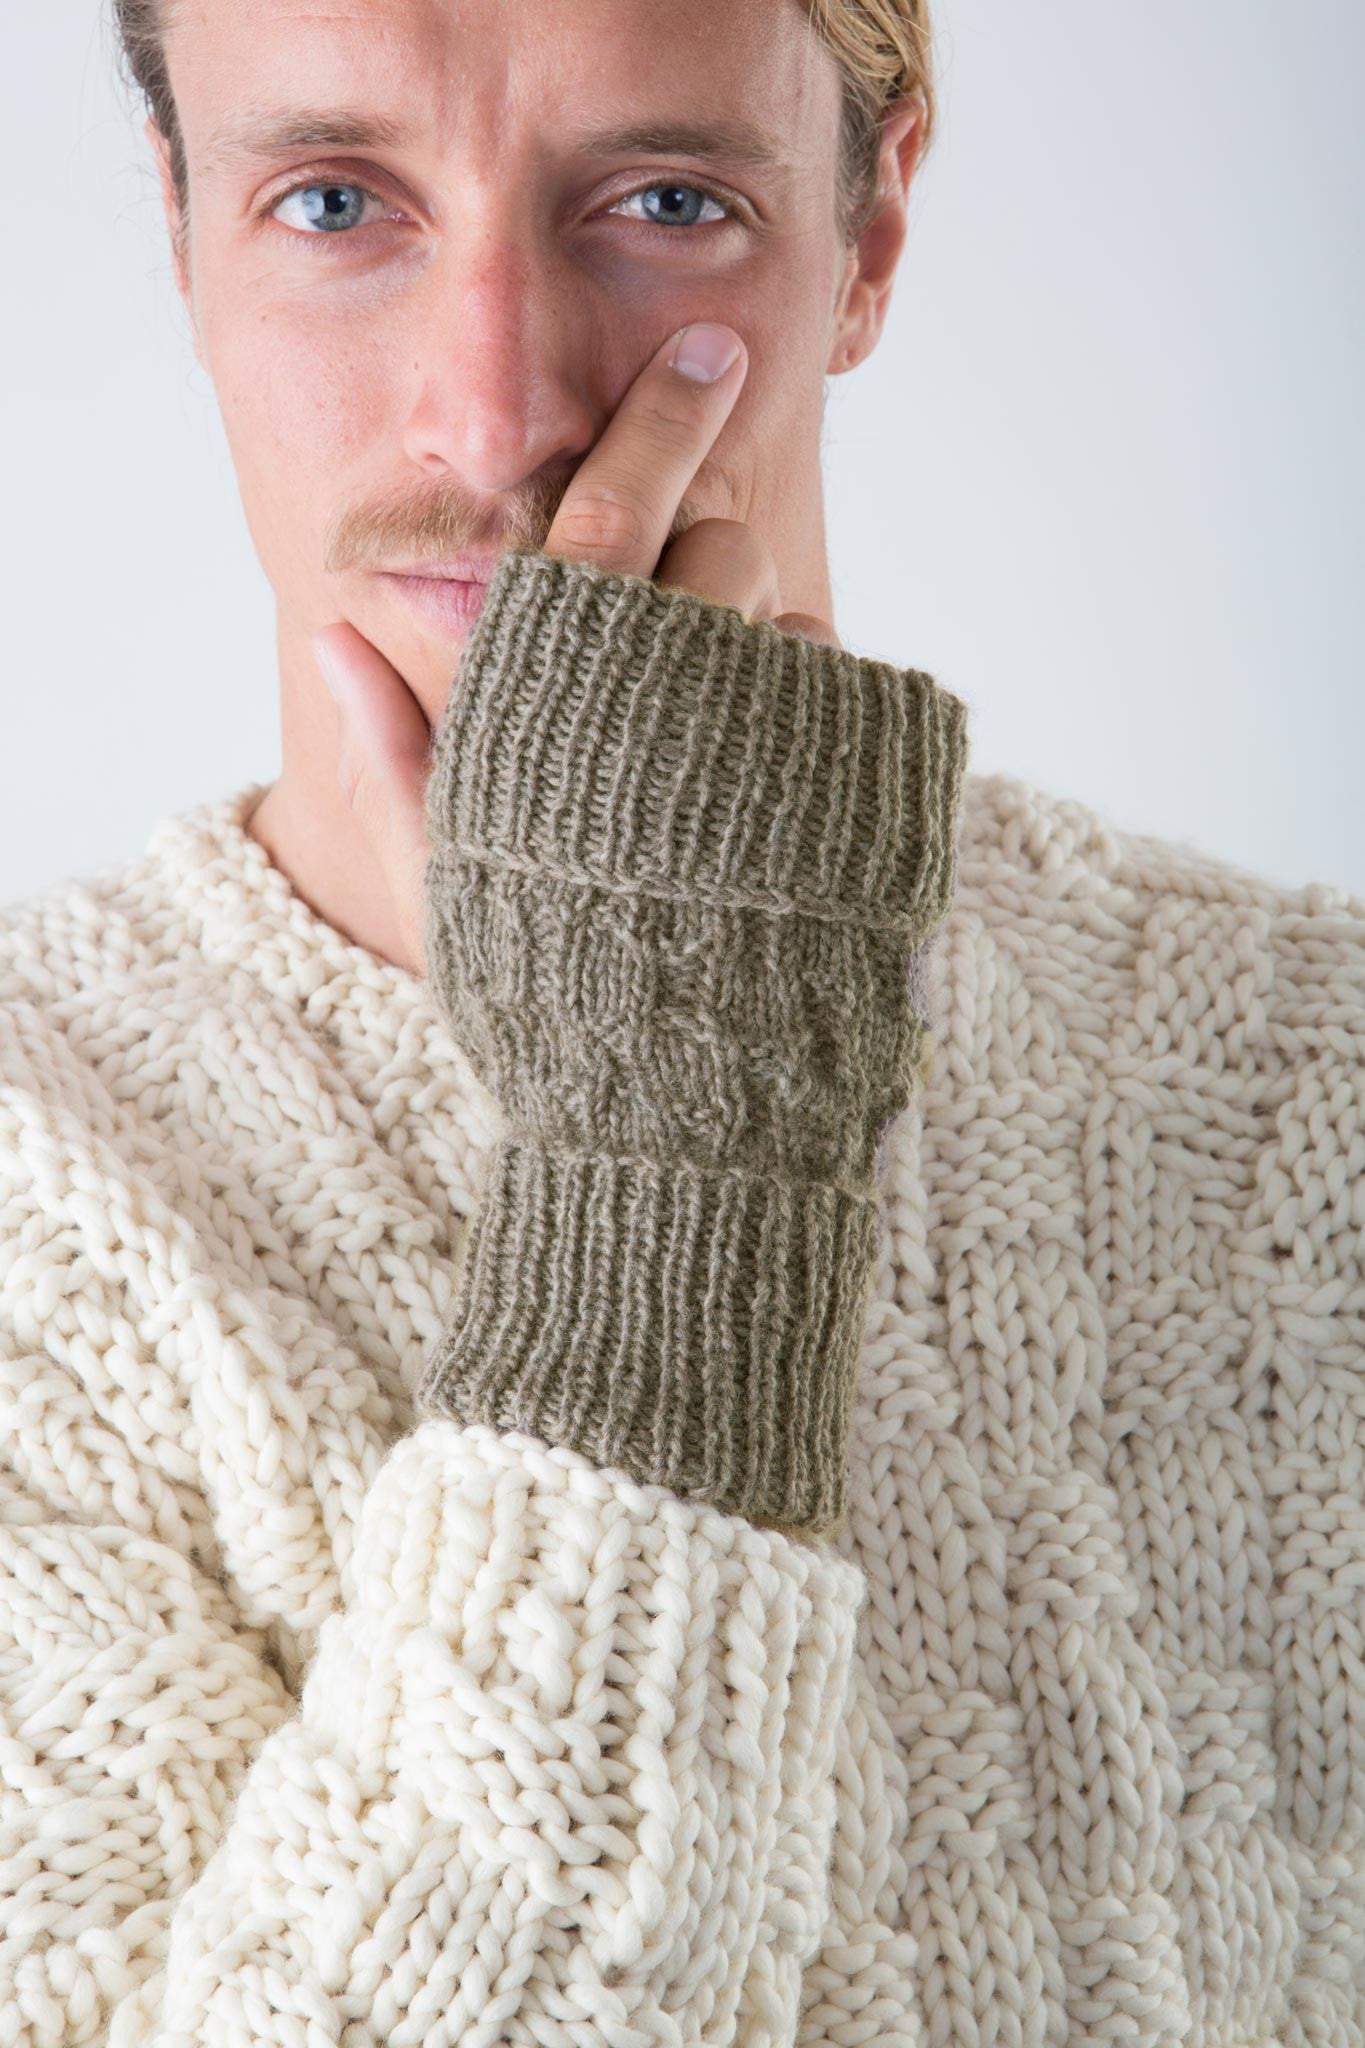 Keith Fingerless Gloves| James Cox Knits - kits for men